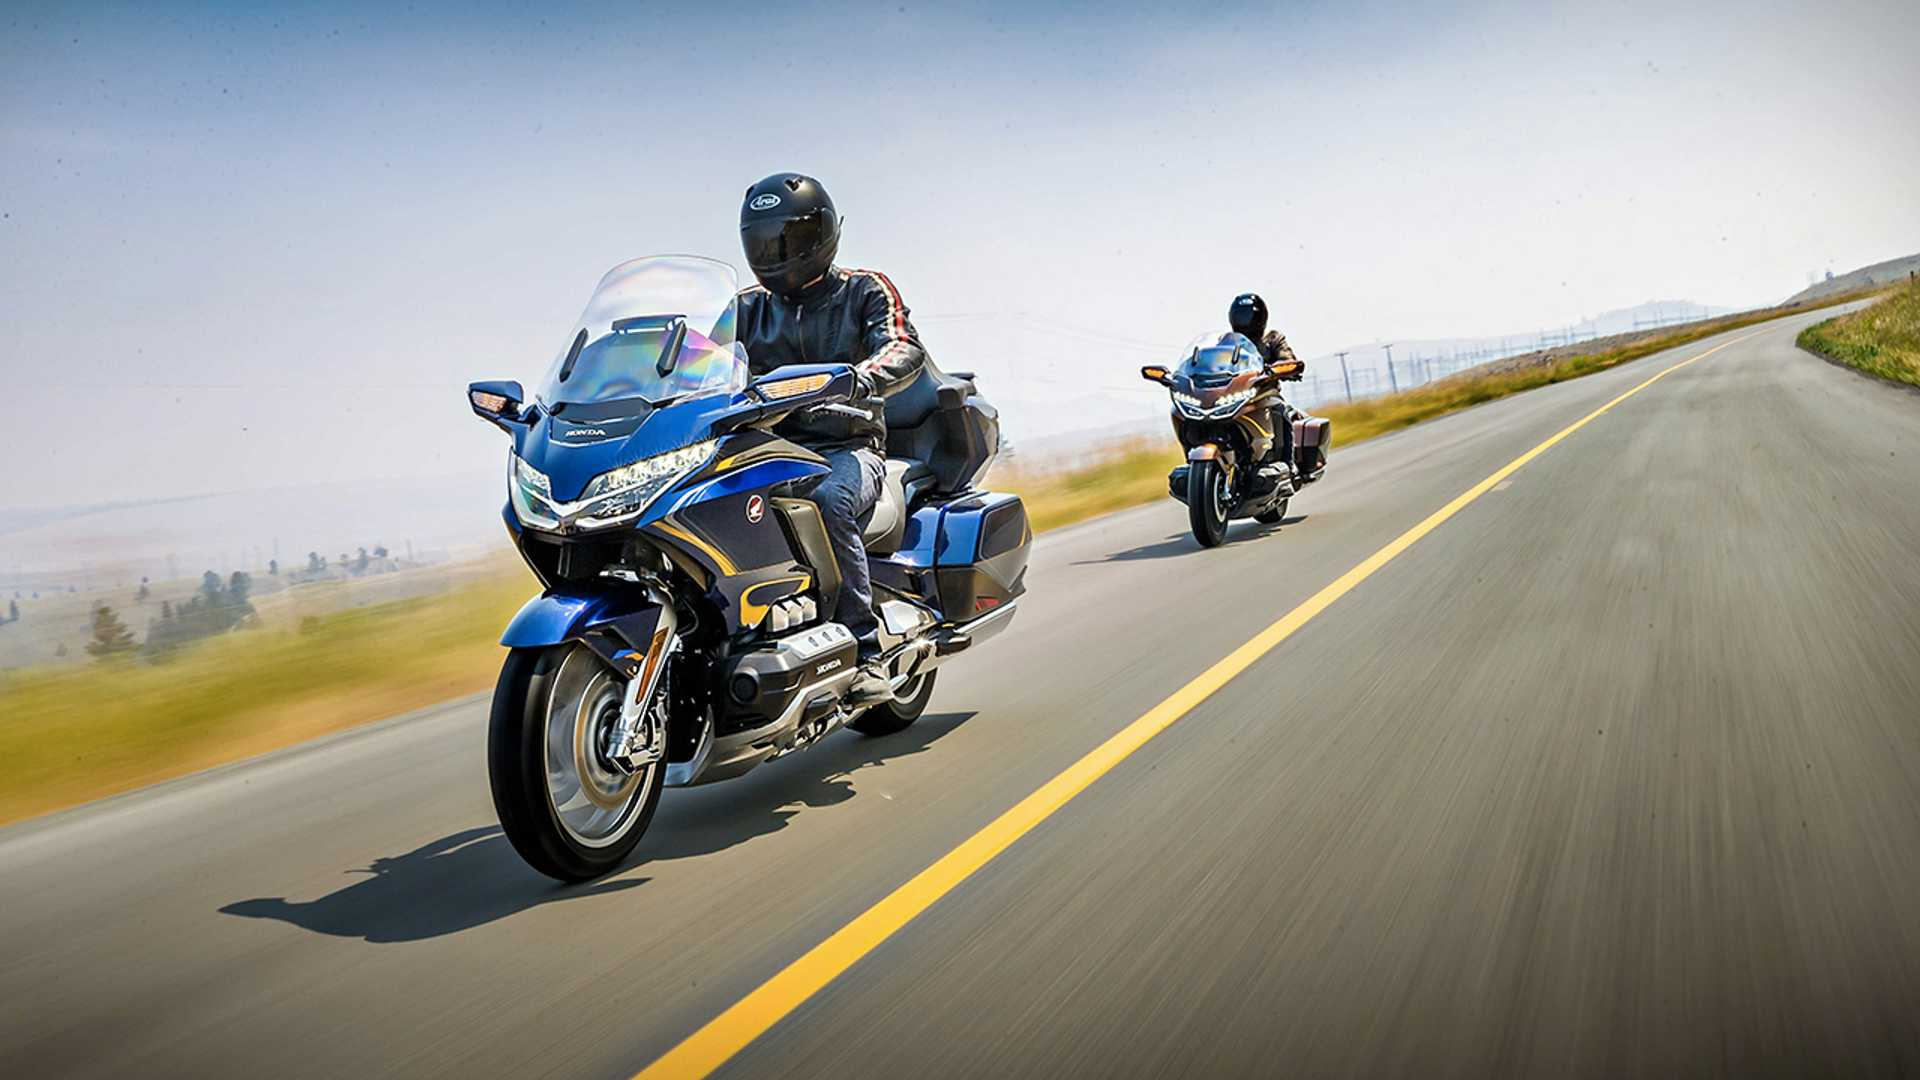 Gold Wing Owners, There's An Update Waiting For You